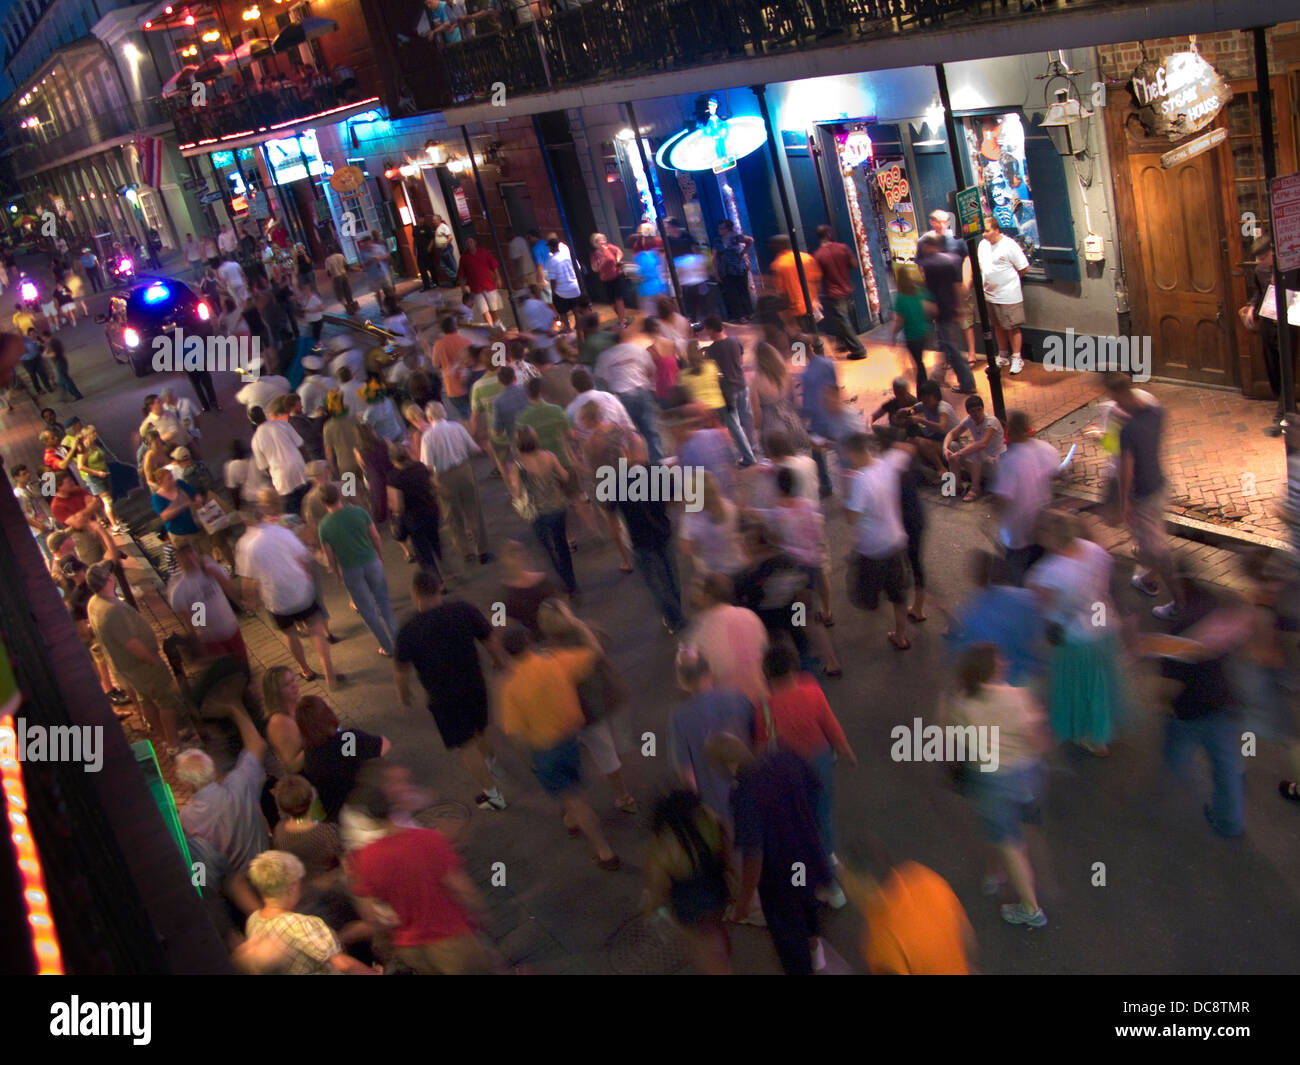 CROWD FOLLOWING MARCHING JAZZ GROUP BOURBON STREET FRENCH QUARTER DOWNTOWN NEW ORLEANS LOUISIANA USA - Stock Image